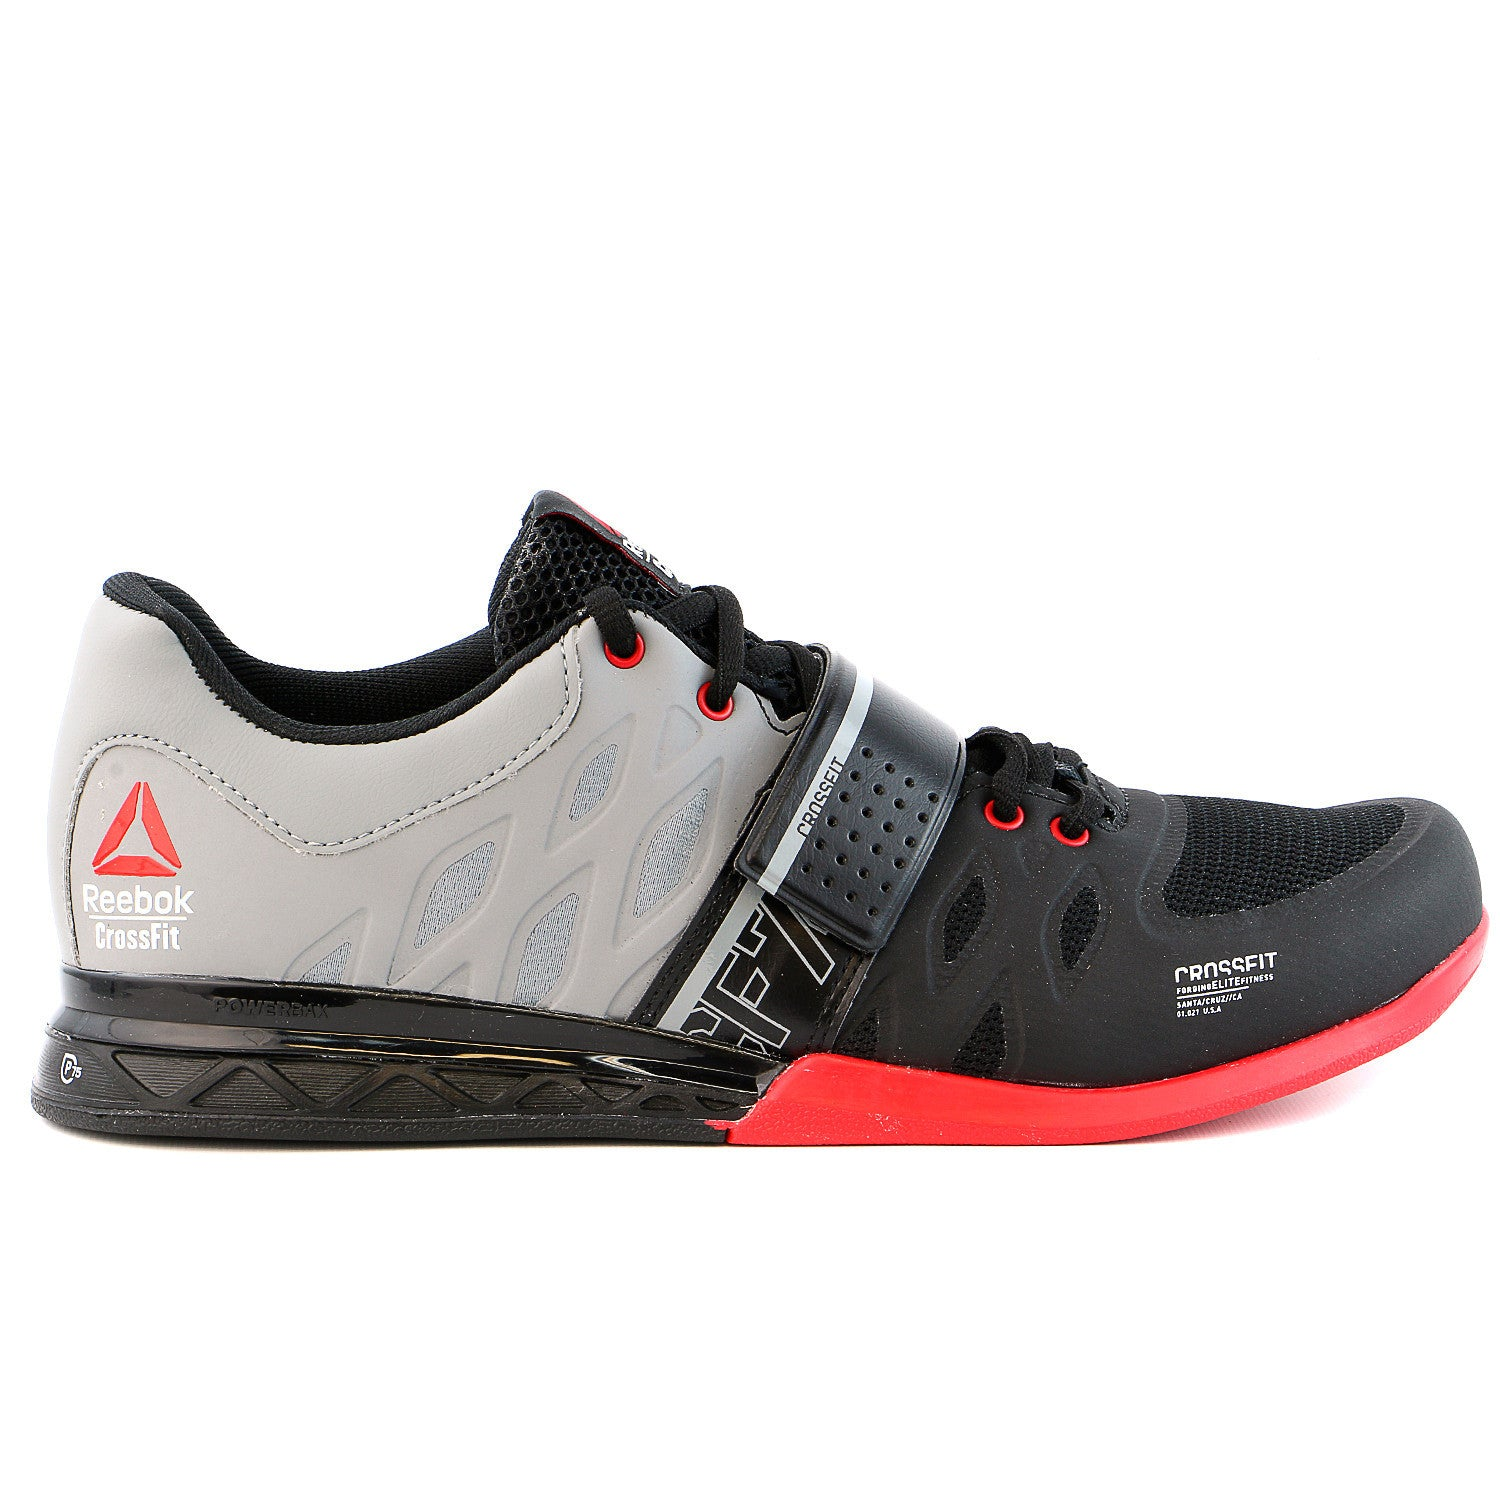 71b62a9b585a Reebok R Crossfit Lifter 2.0 Training Shoe - Black Flat Grey Excellent Red  - Mens